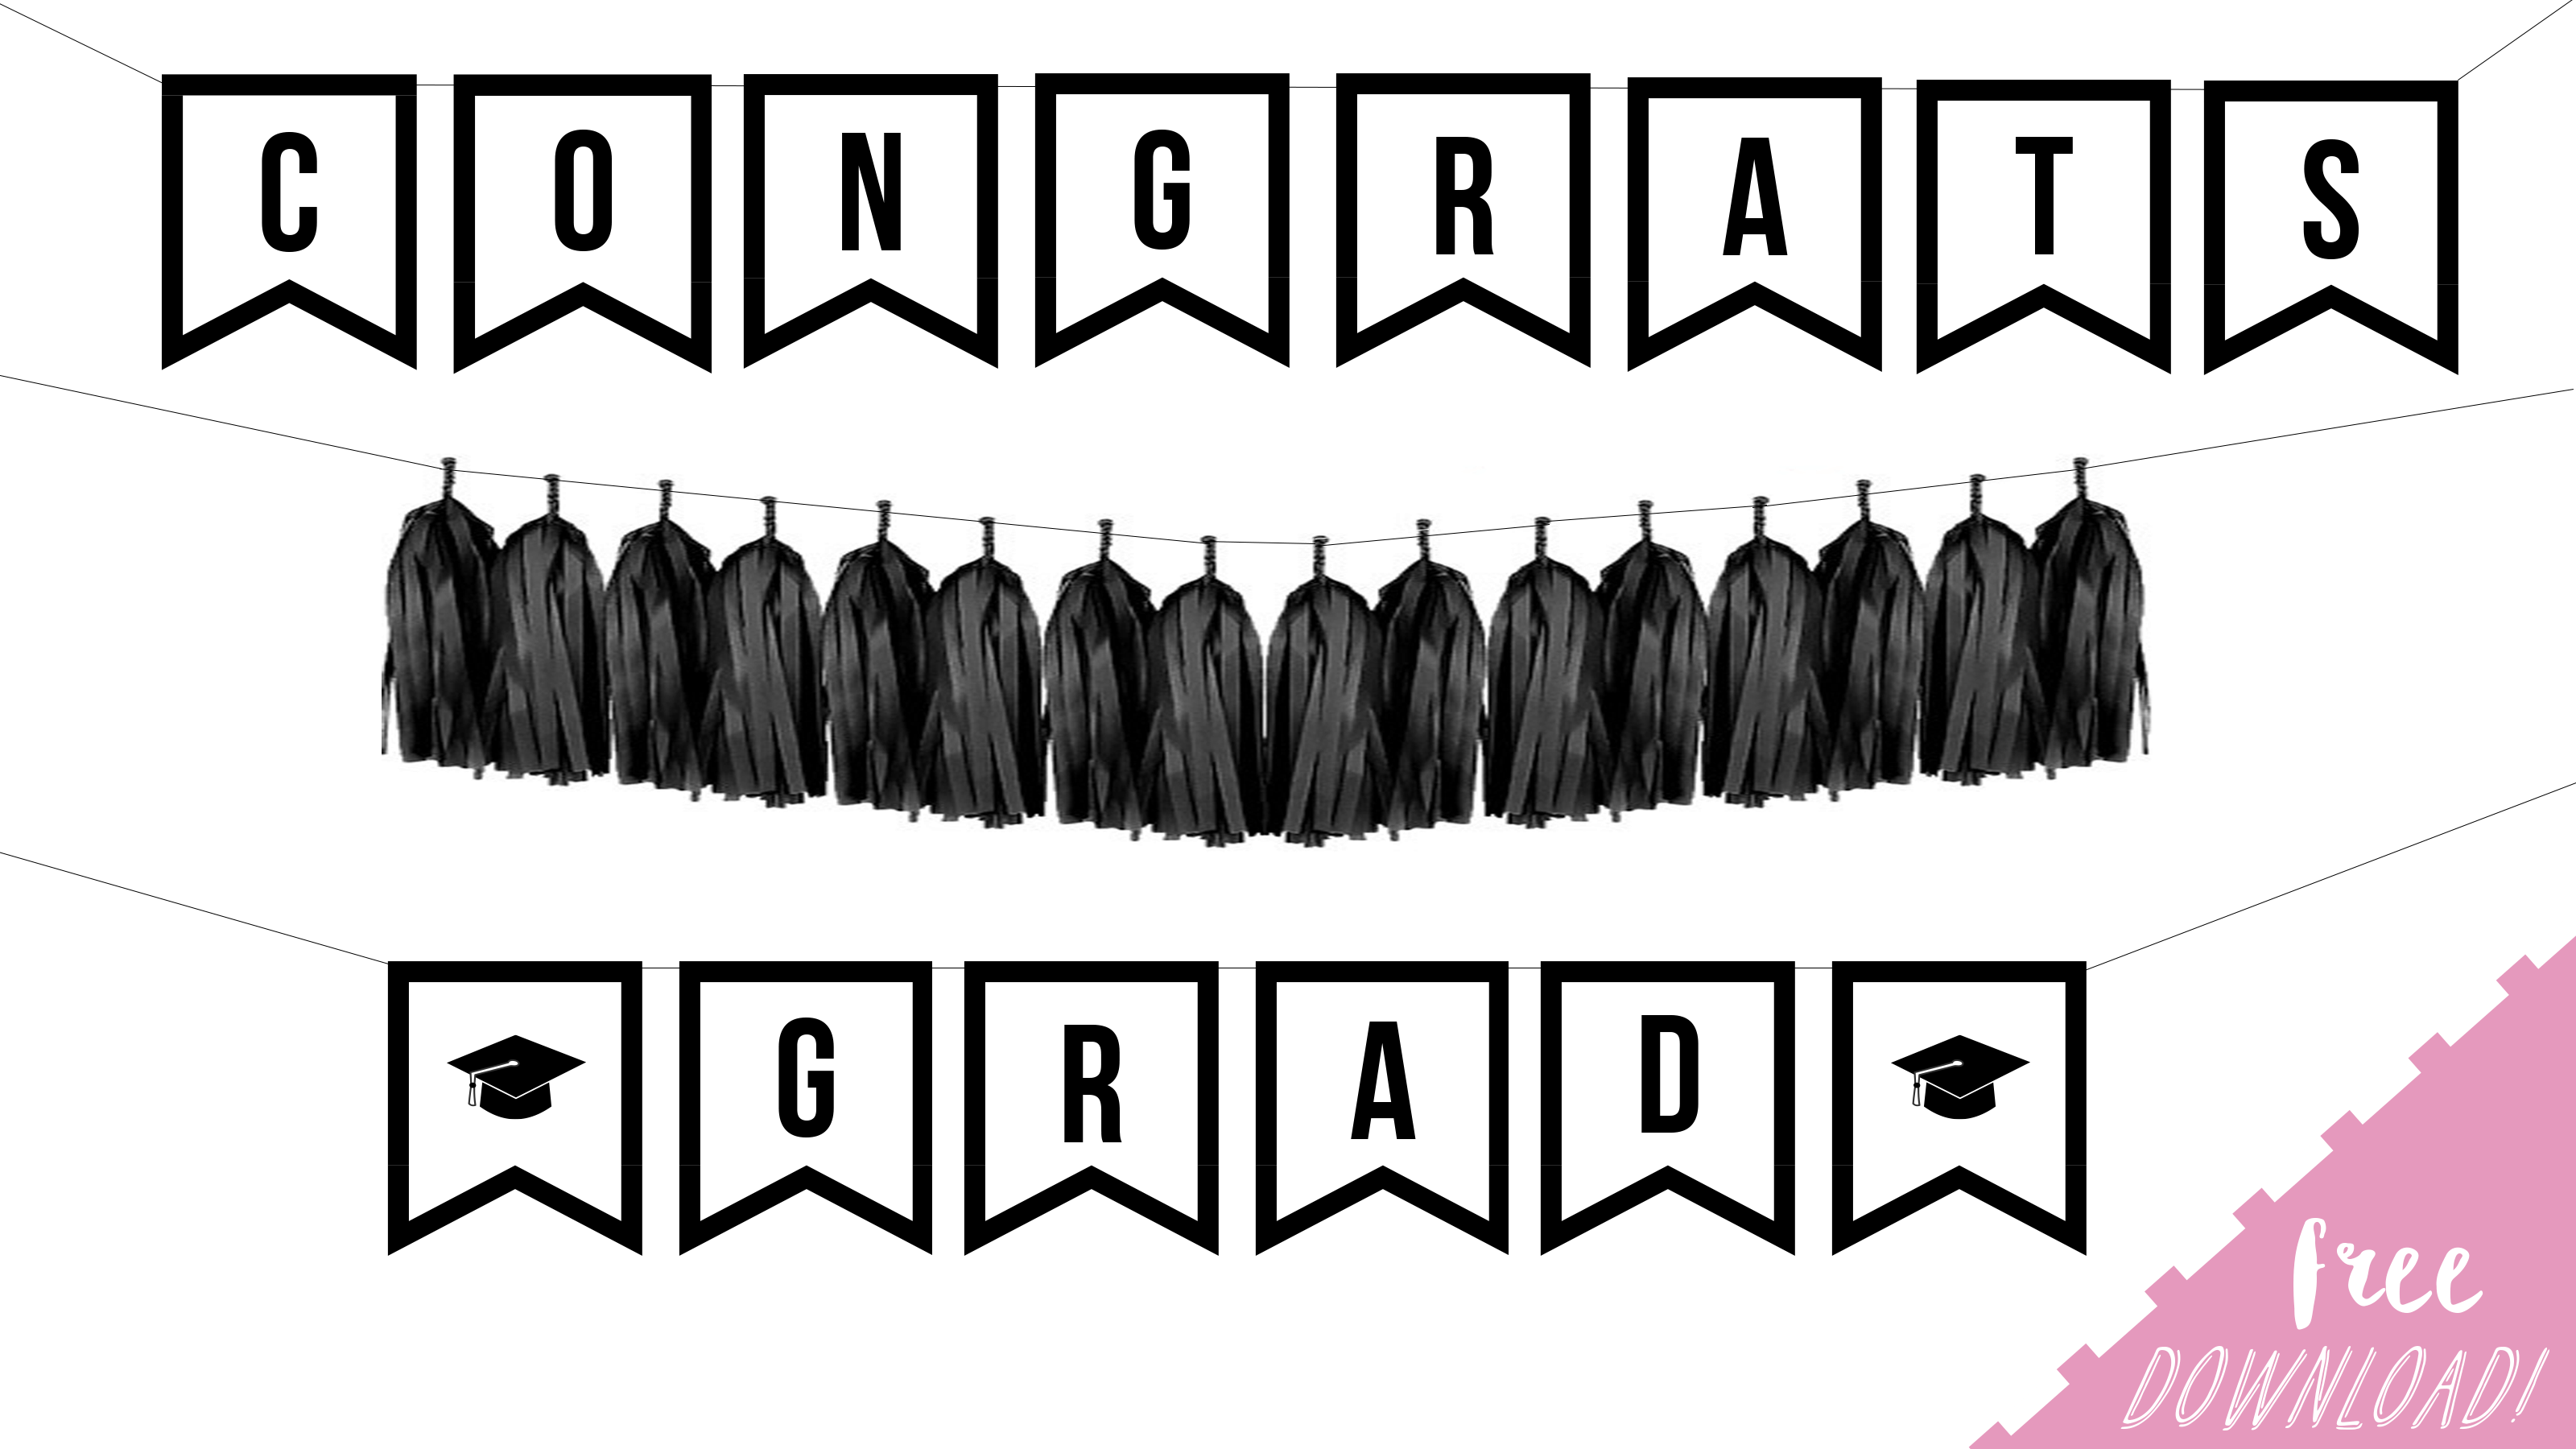 graphic about Congratulations Banner Free Printable named Totally free Printable Commencement Banner - Through Sophia Lee